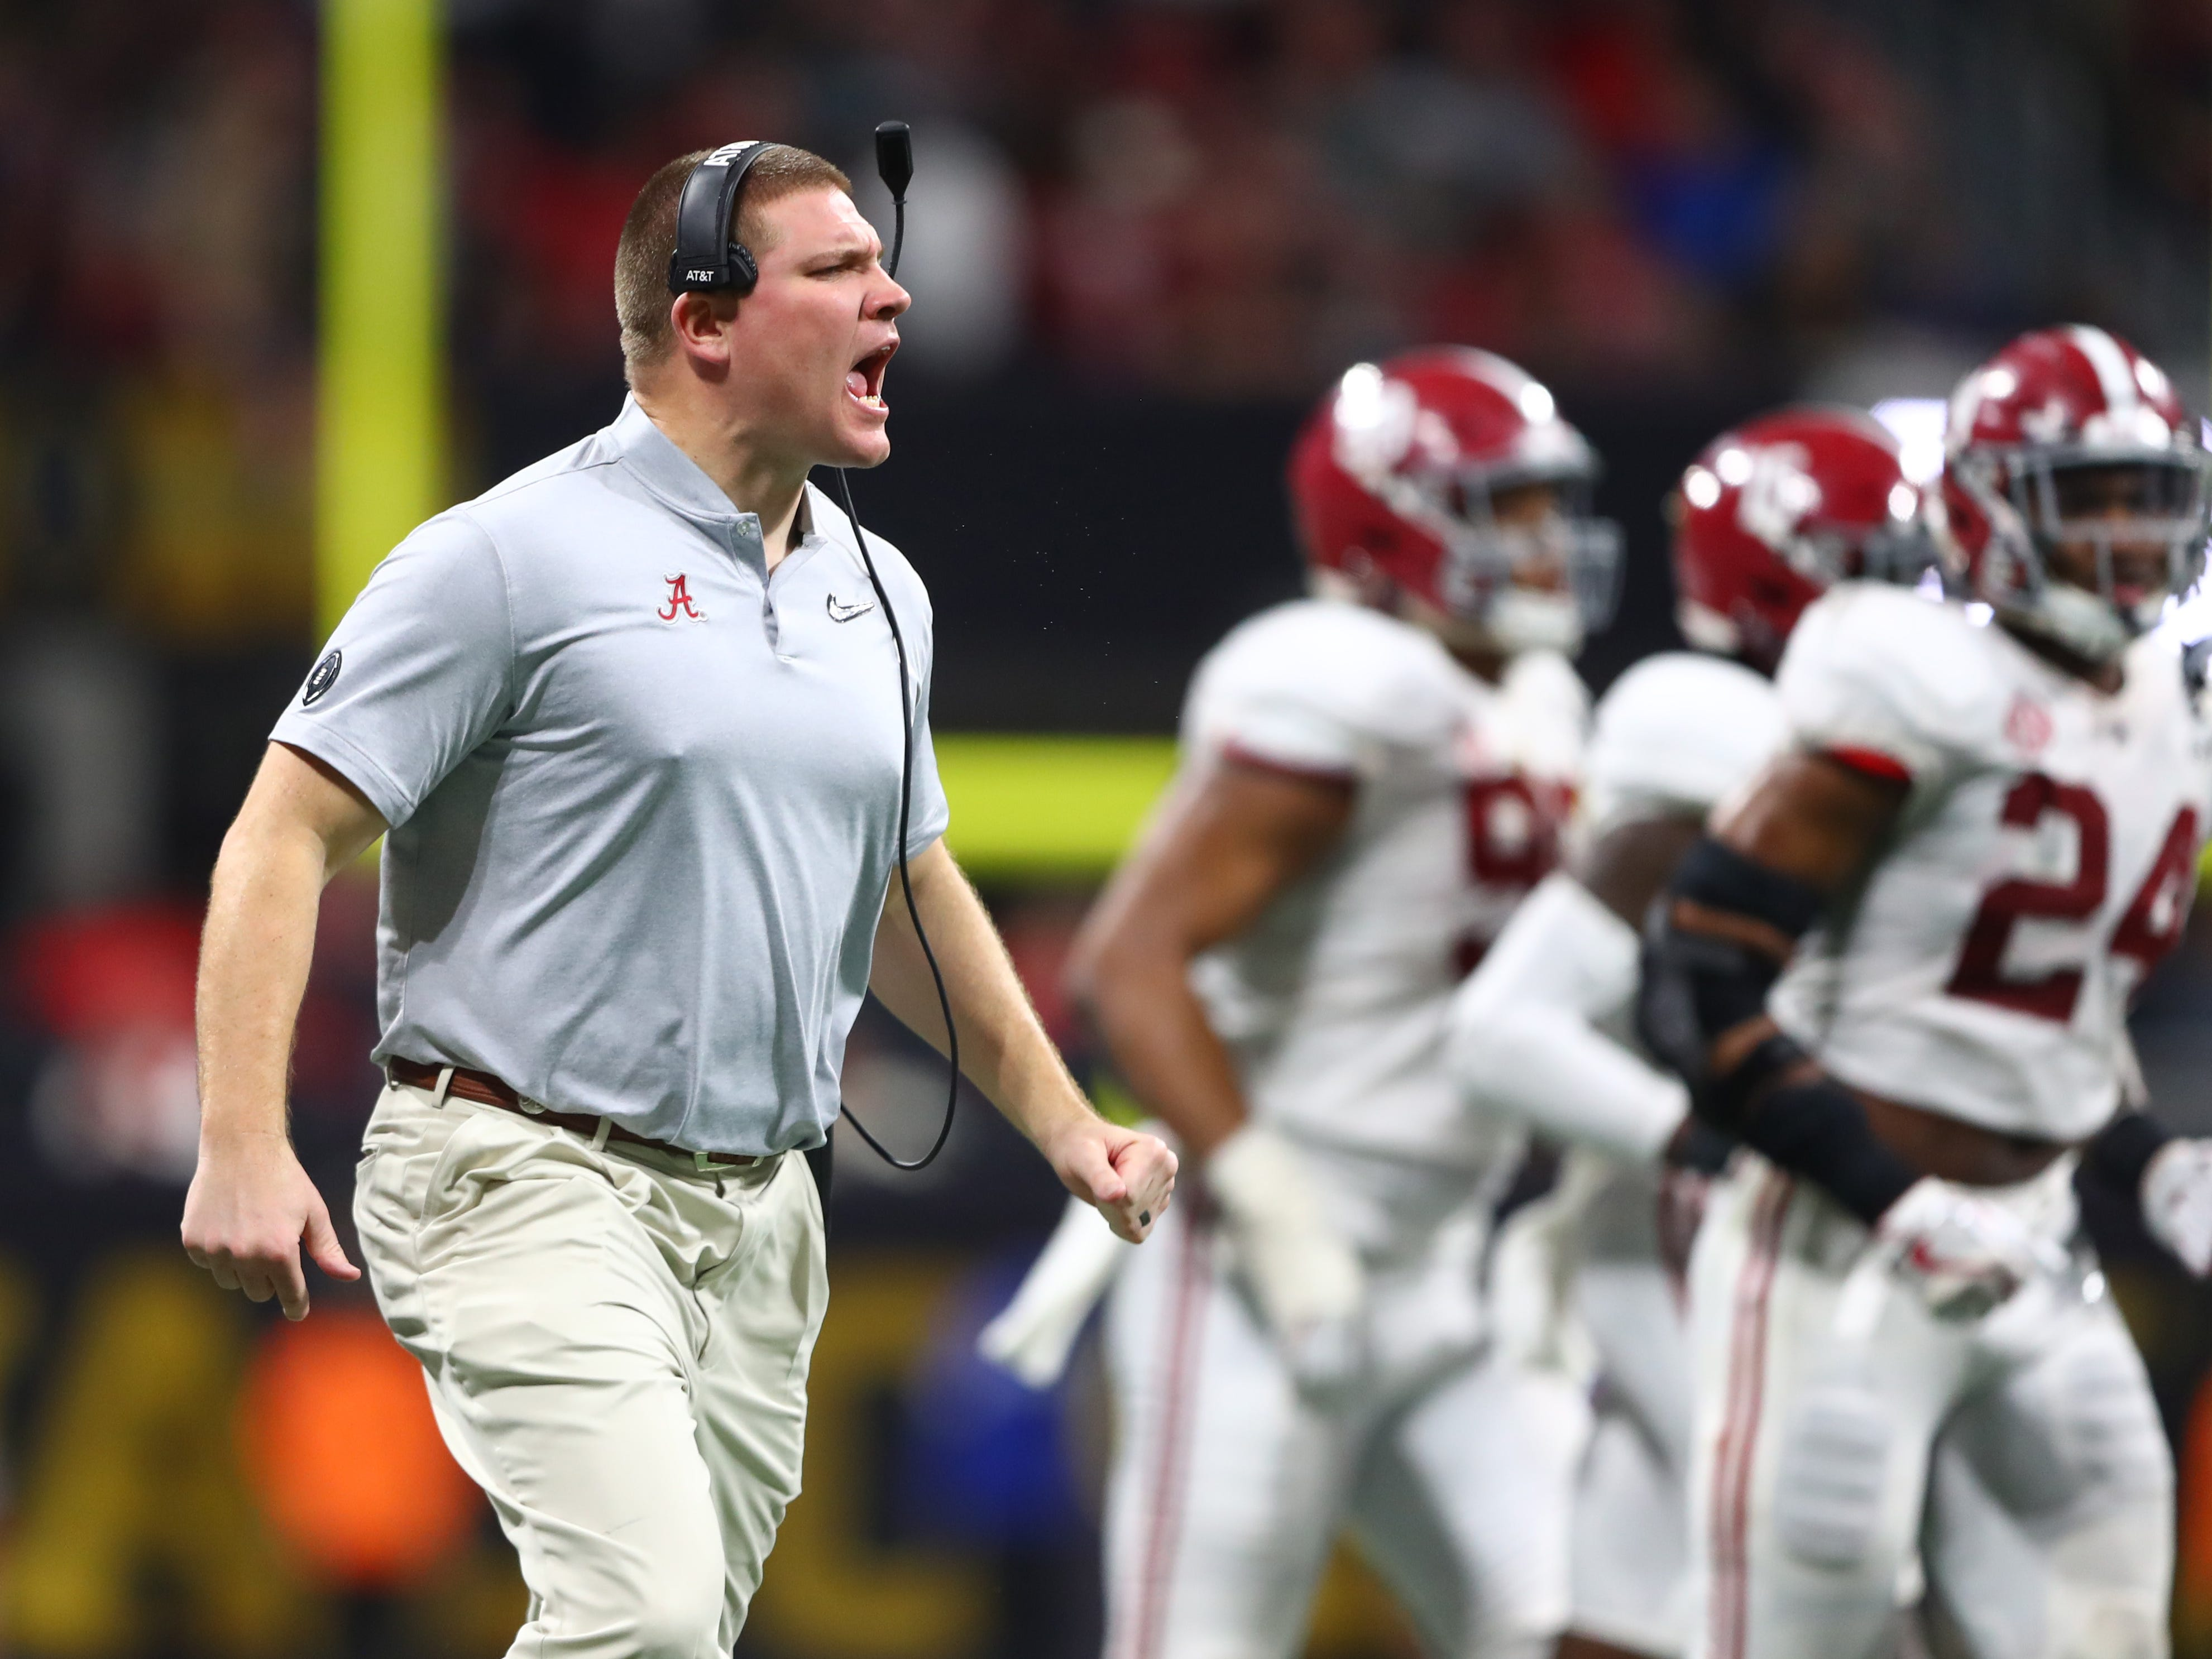 No. 18 (tie): Tosh Lupoi, Alabama defensive coordinator: $1,100,000. Long known for how well he recruits, Lupoi was put in charge of the Crimson Tide's defense after Jeremy Pruitt departed to become Tennessee's head coach. He made $425,000 at Alabama in 2015; $550,000 in 2016 and $950,000 last season, when he was the team's linebackers coach and getting paid more than at least 40 Bowl Subdivision head coaches.